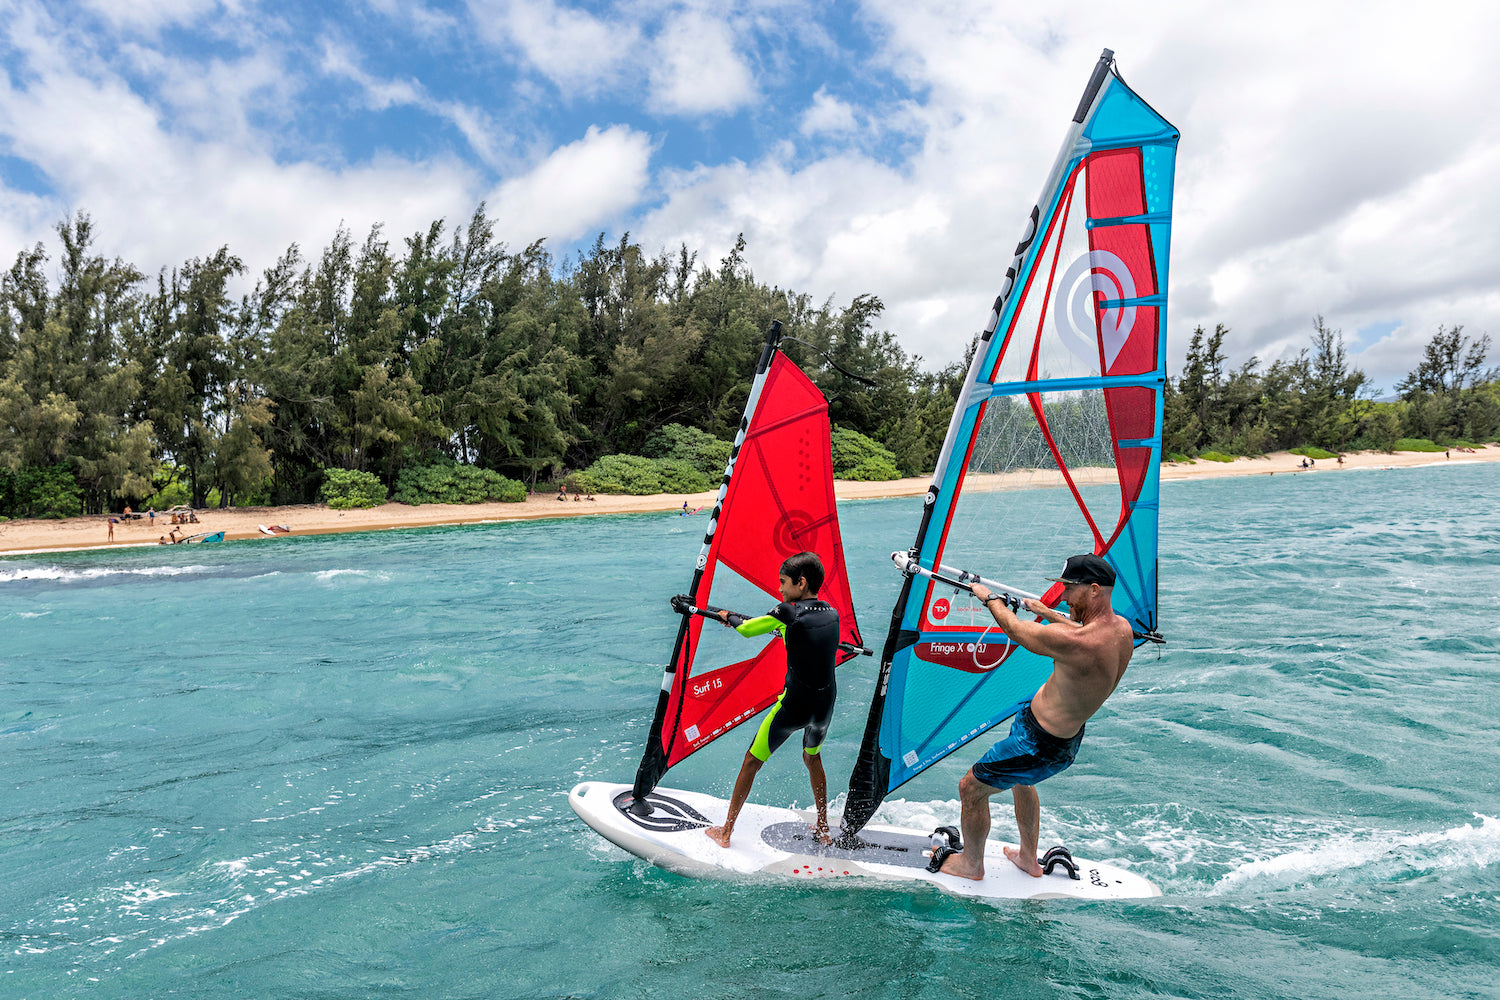 Tandem Sailing on the Goya Surf Windsurf Board